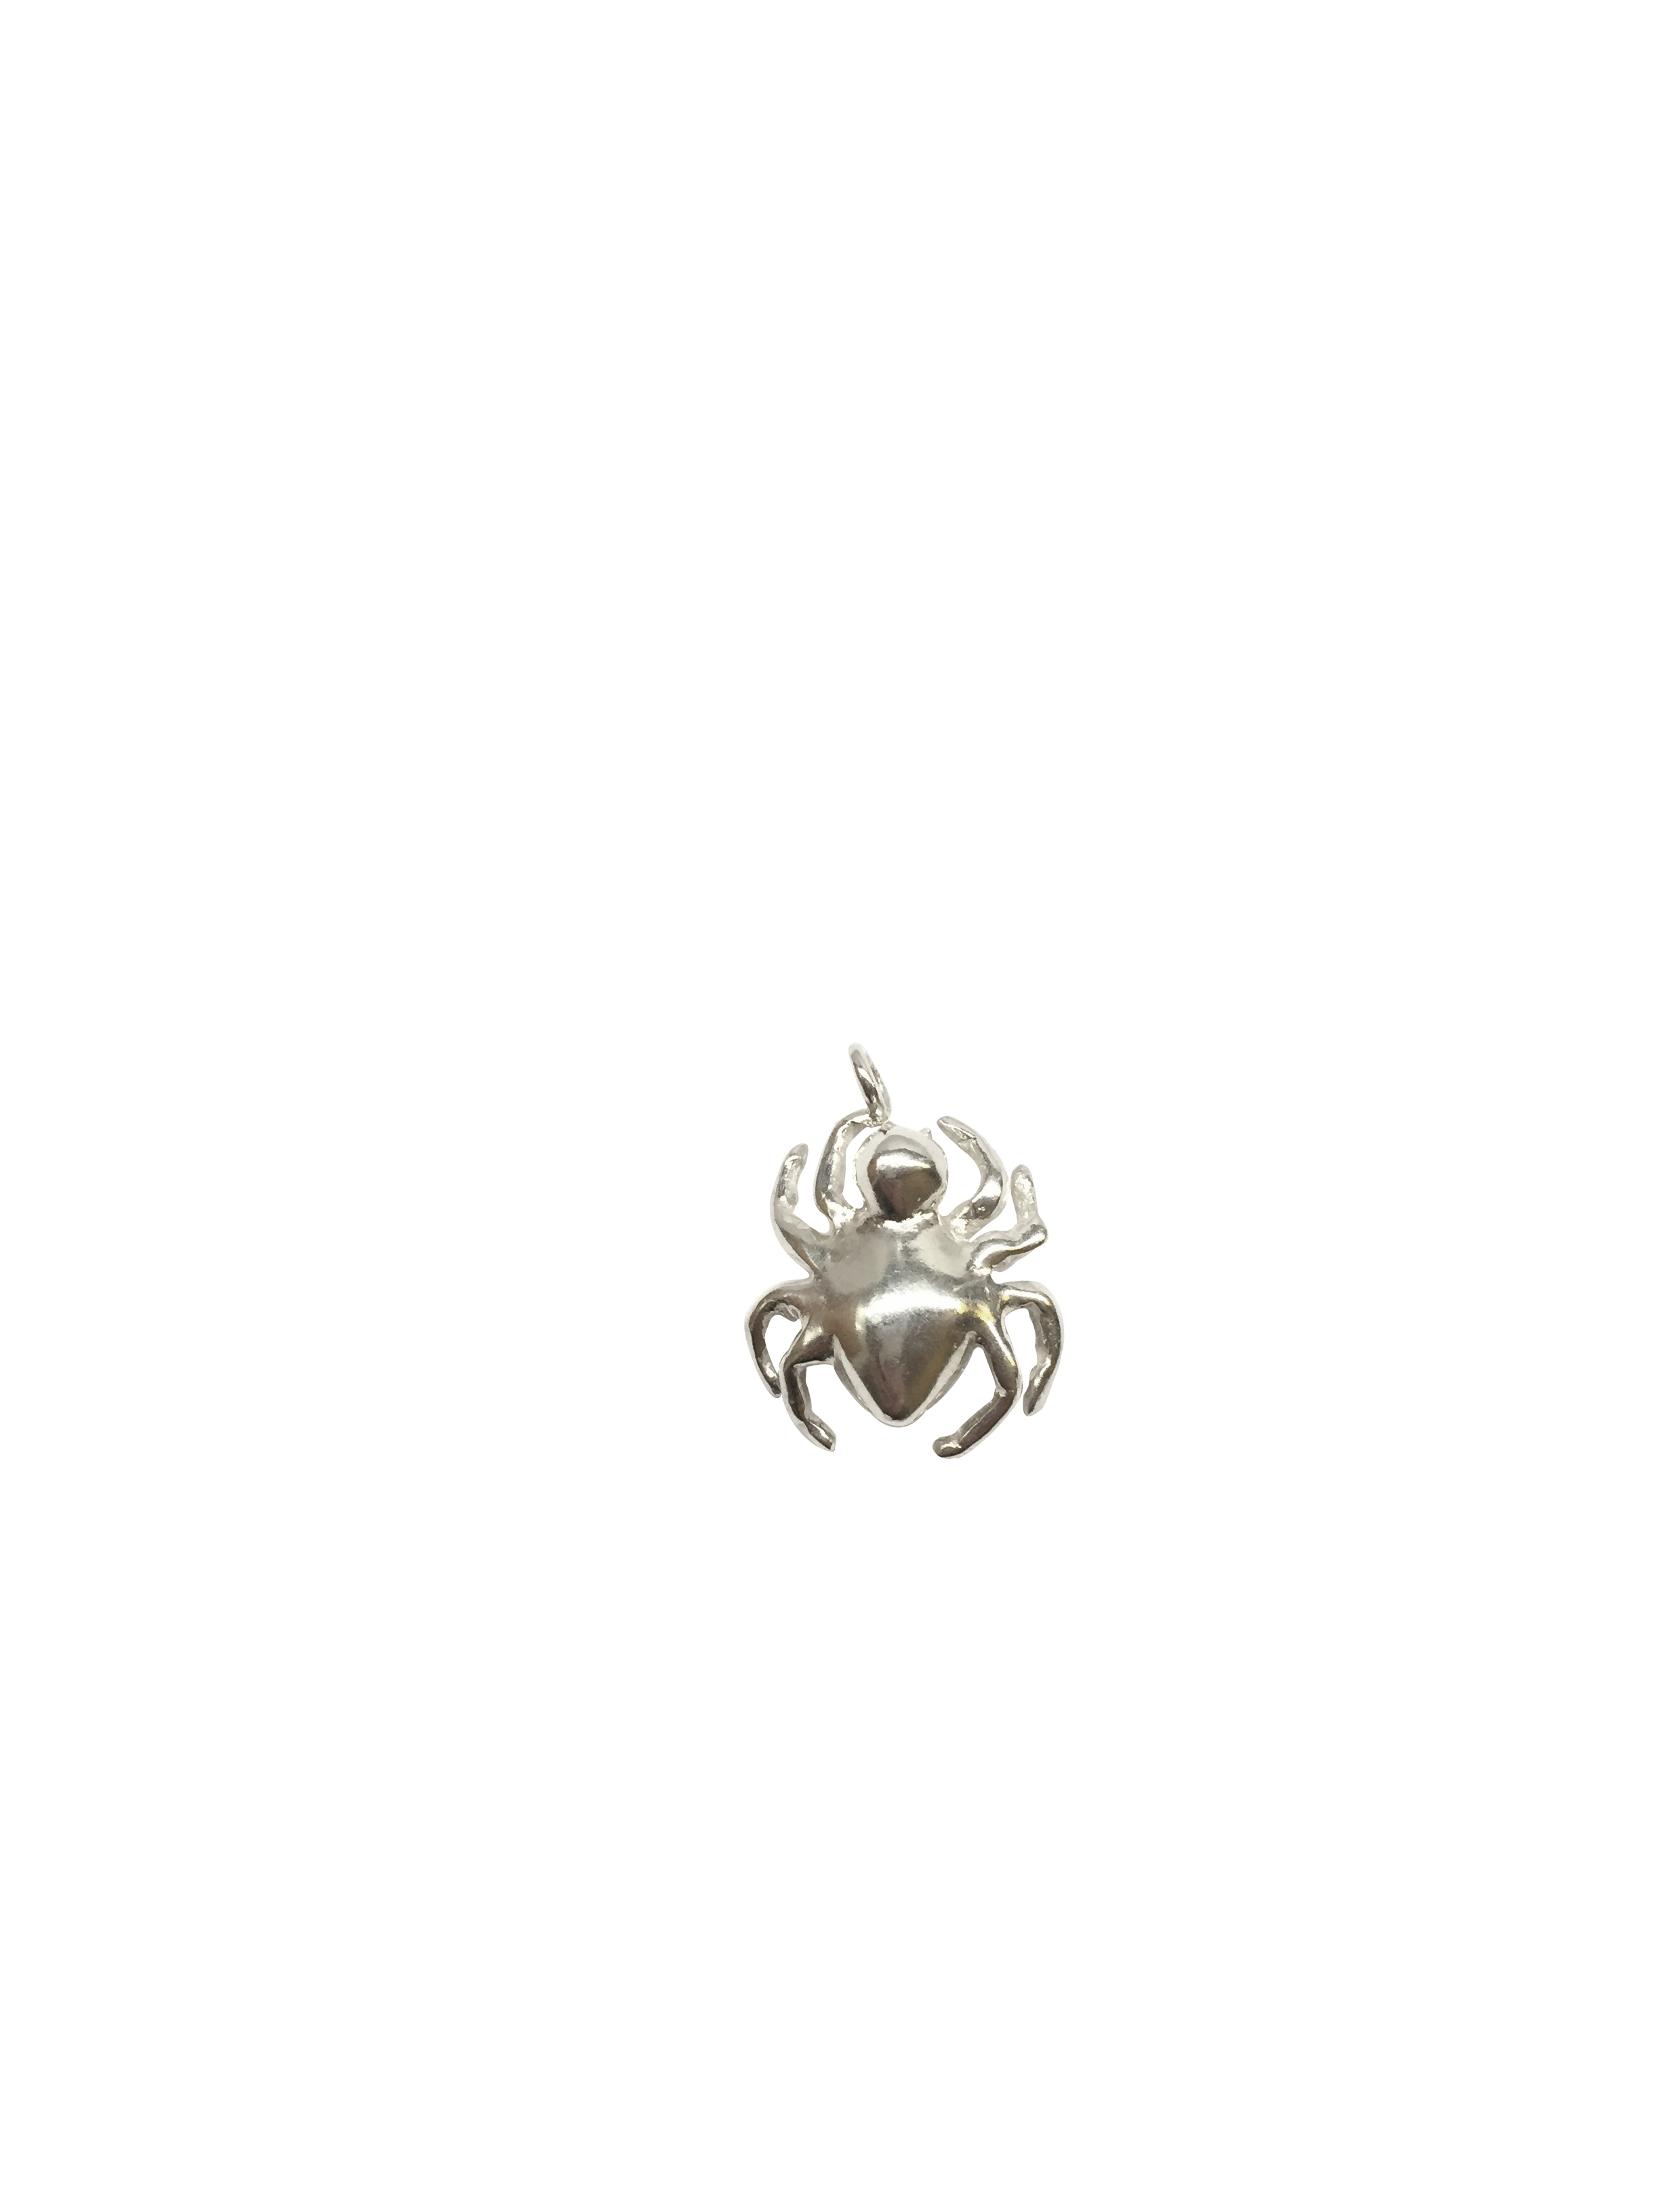 Spider pendant 4 cut-out.jpg